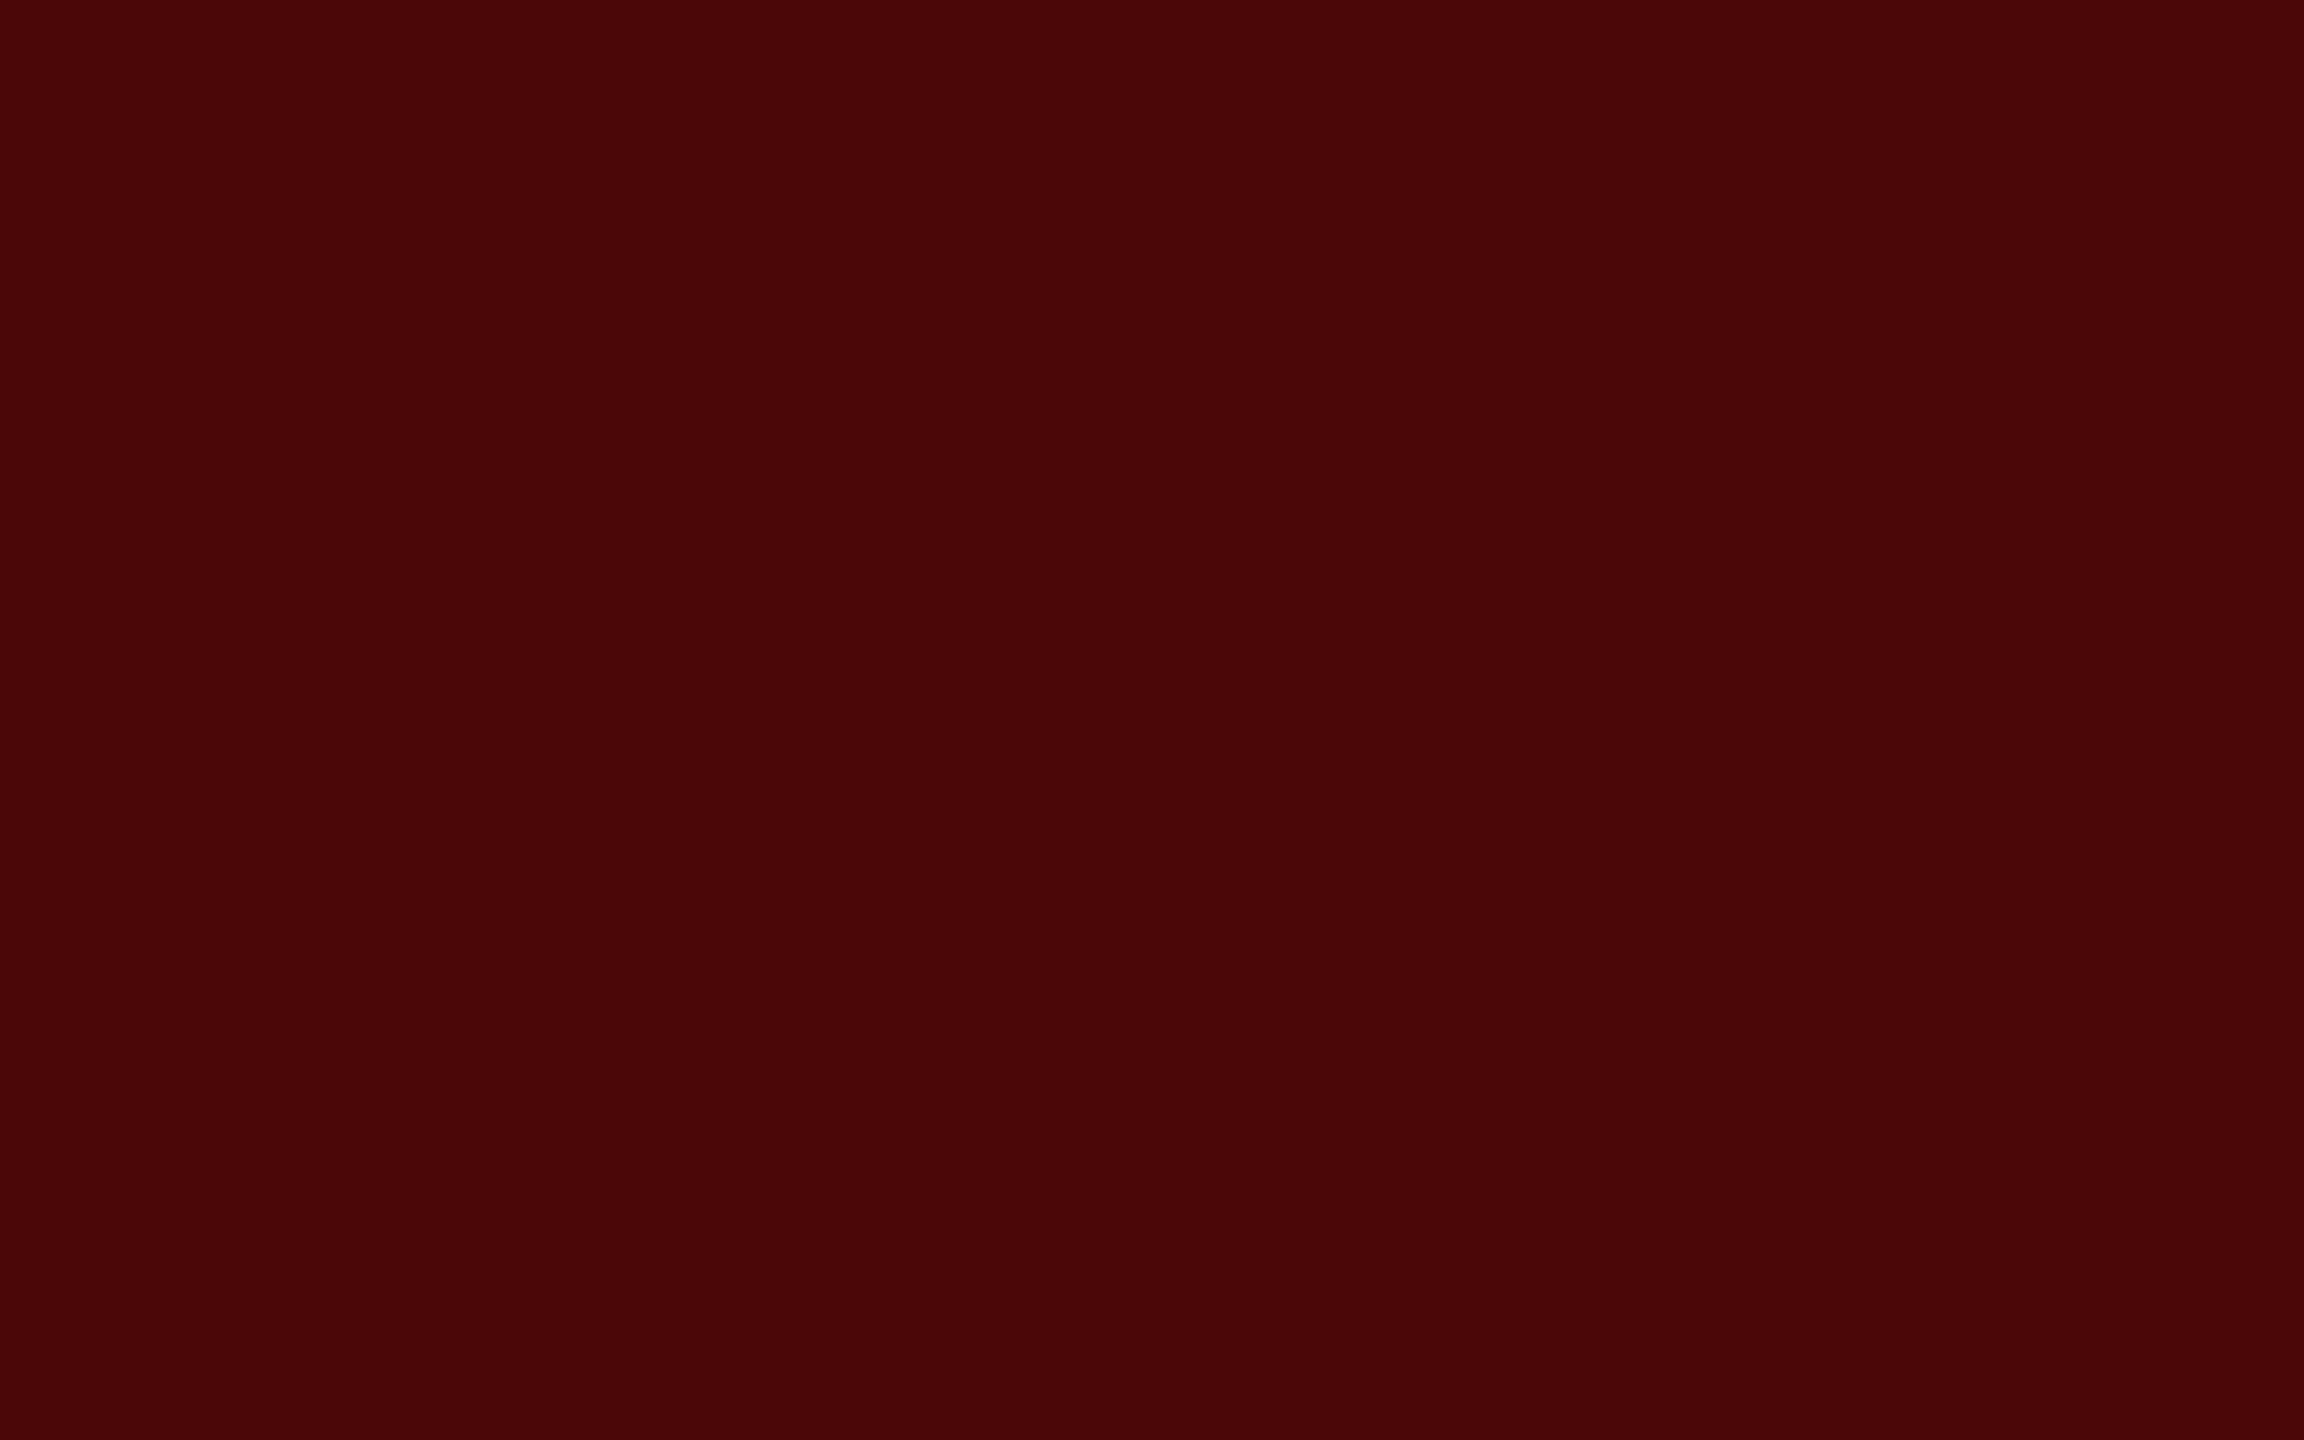 2304x1440 Bulgarian Rose Solid Color Background